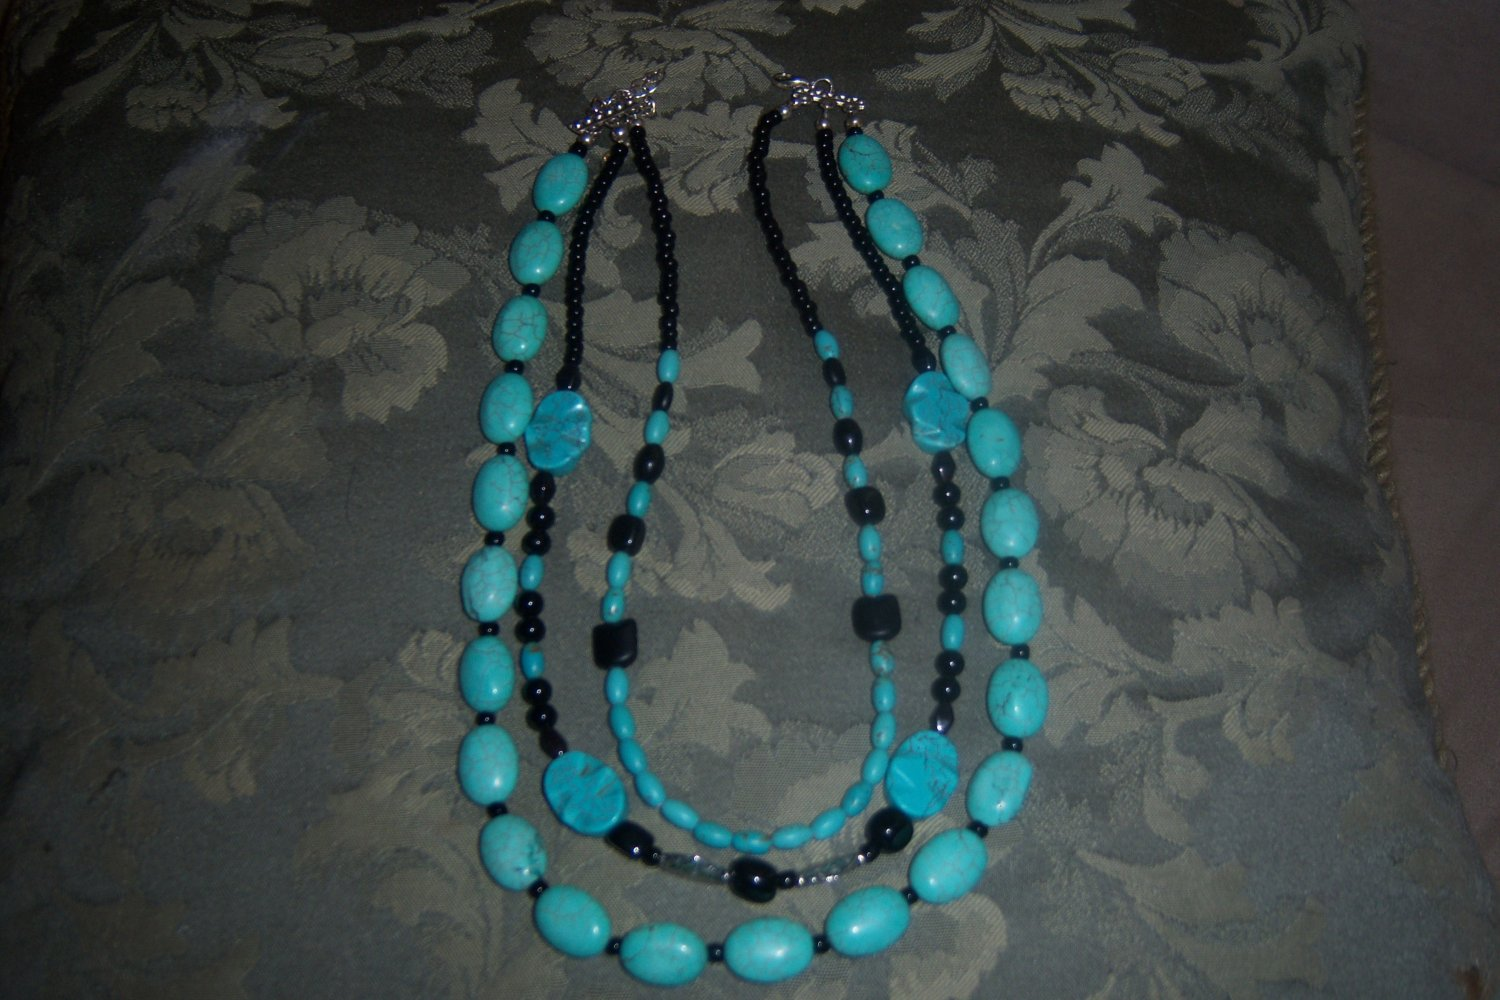 TRIPLE THREAT- TURQUOISE AND BLACK NECKLACE